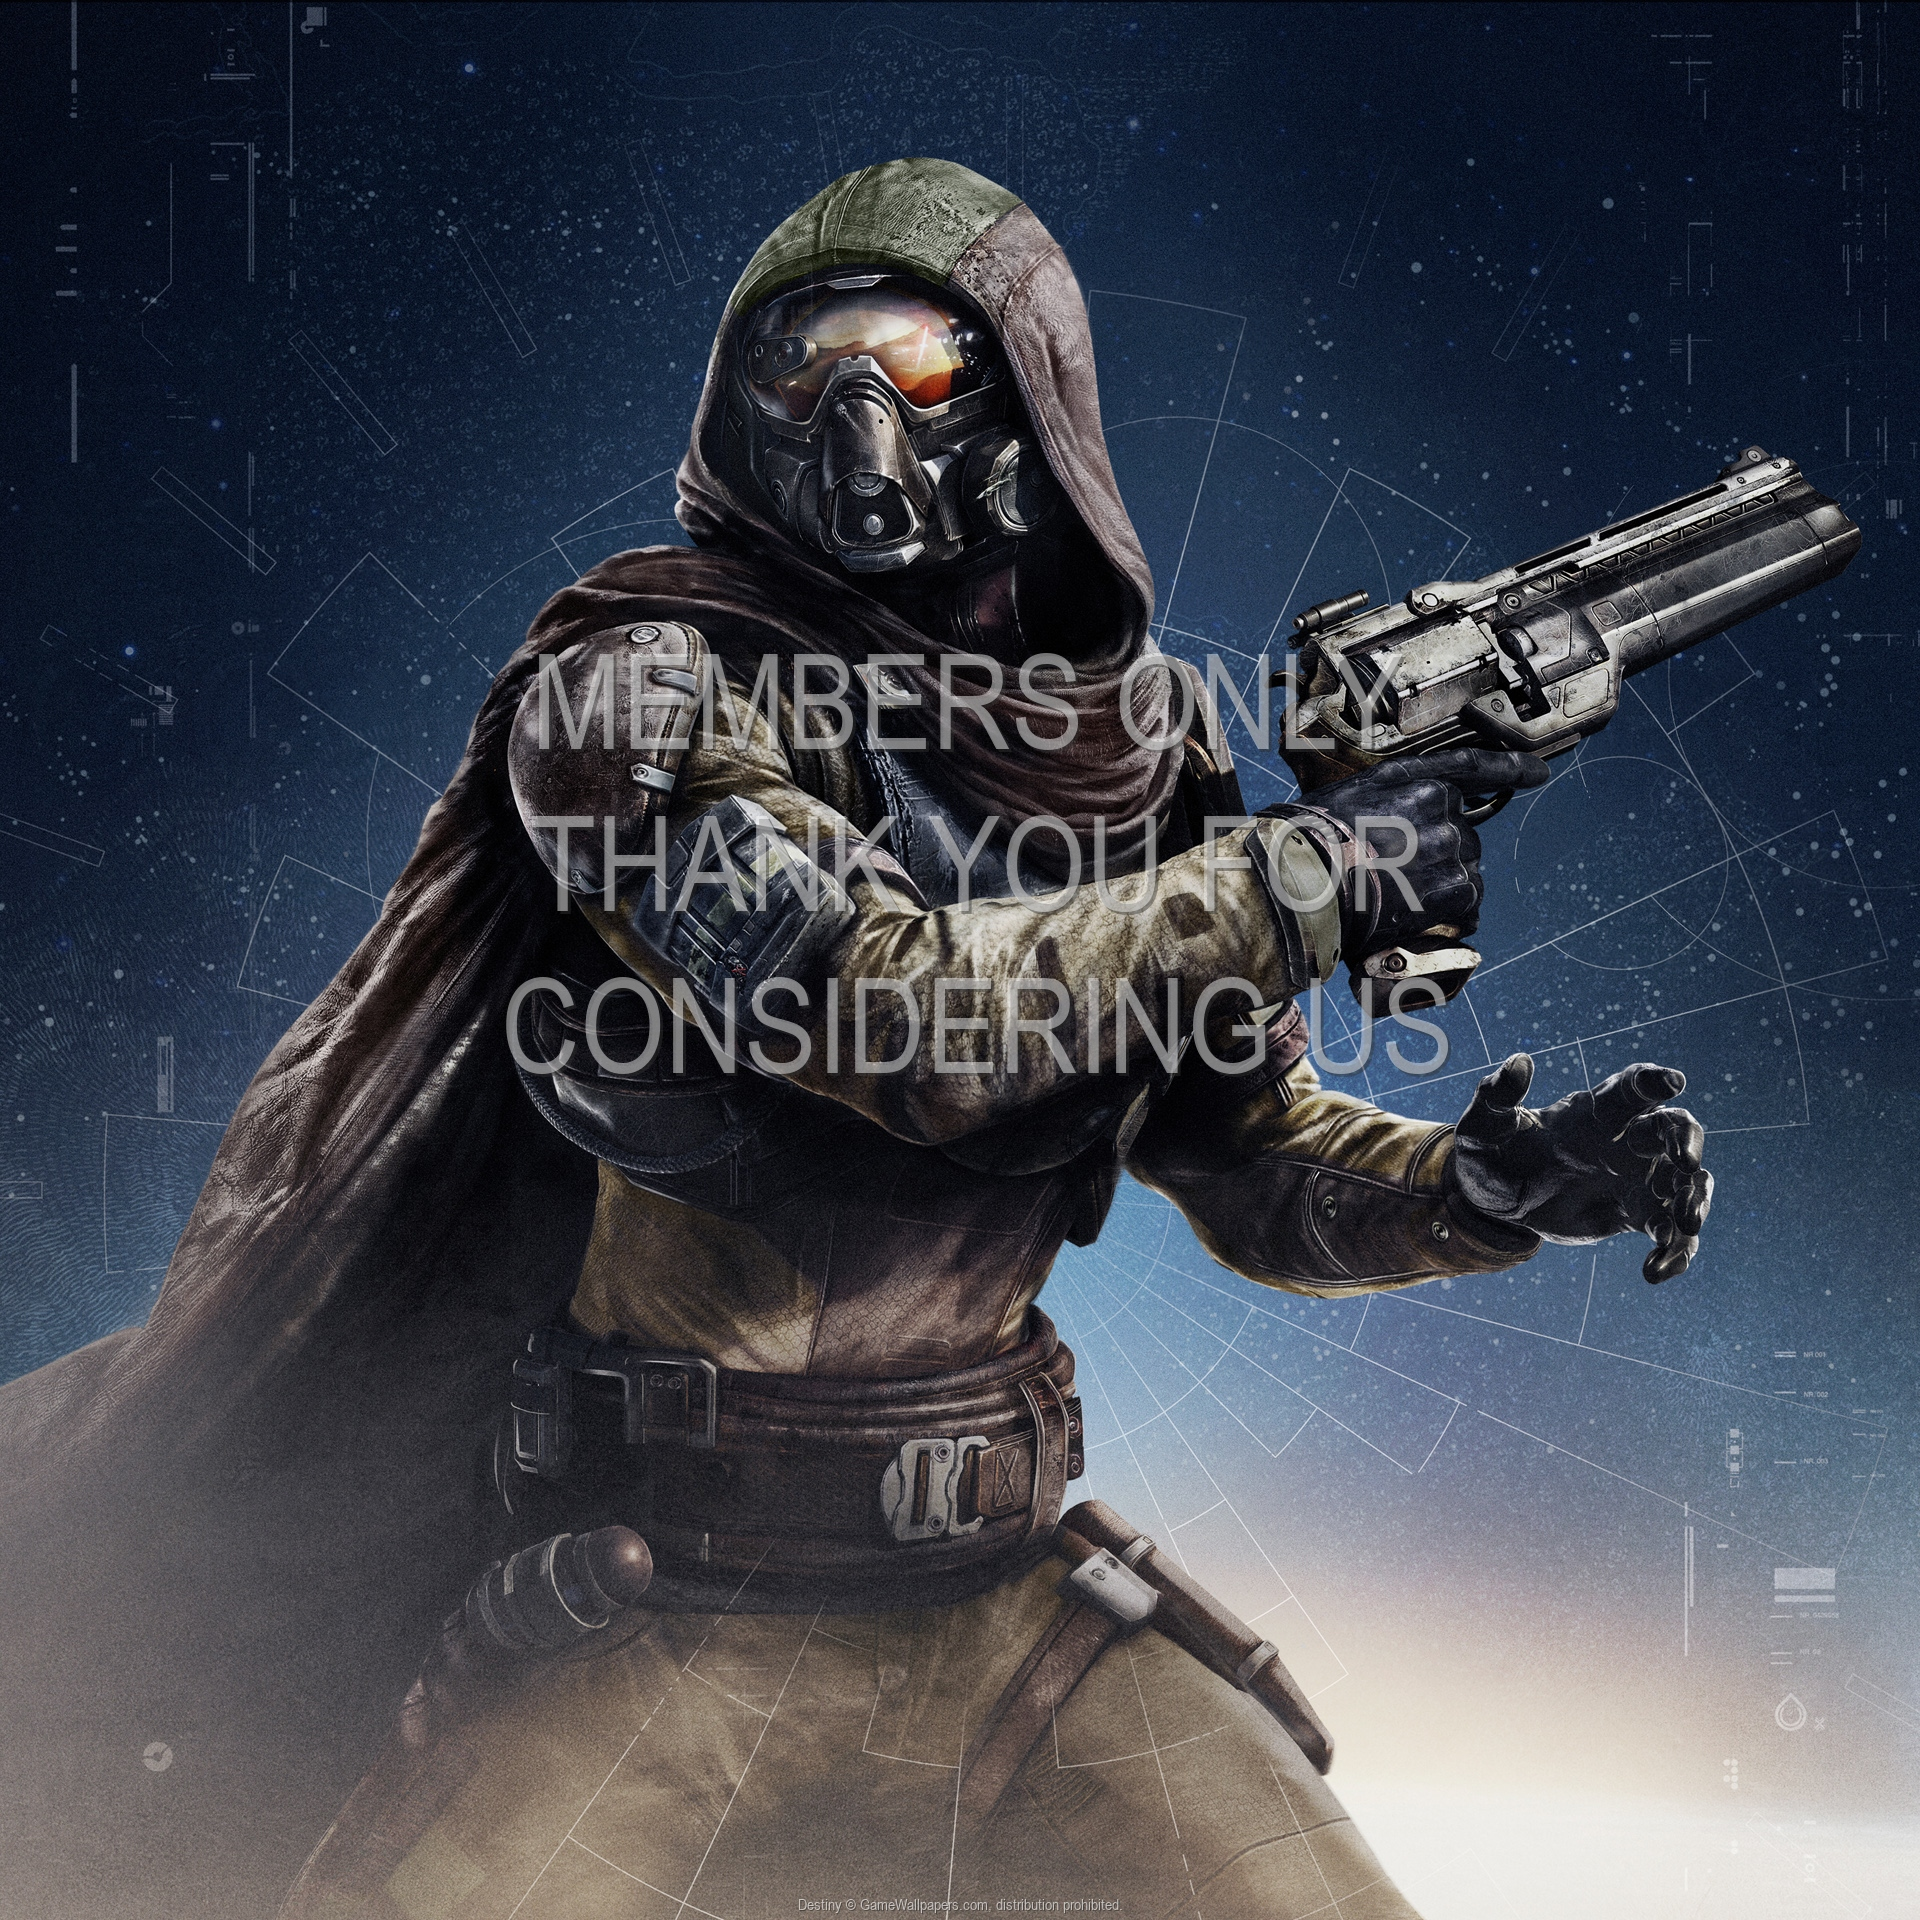 Destiny 1920x1080 Mobile wallpaper or background 12